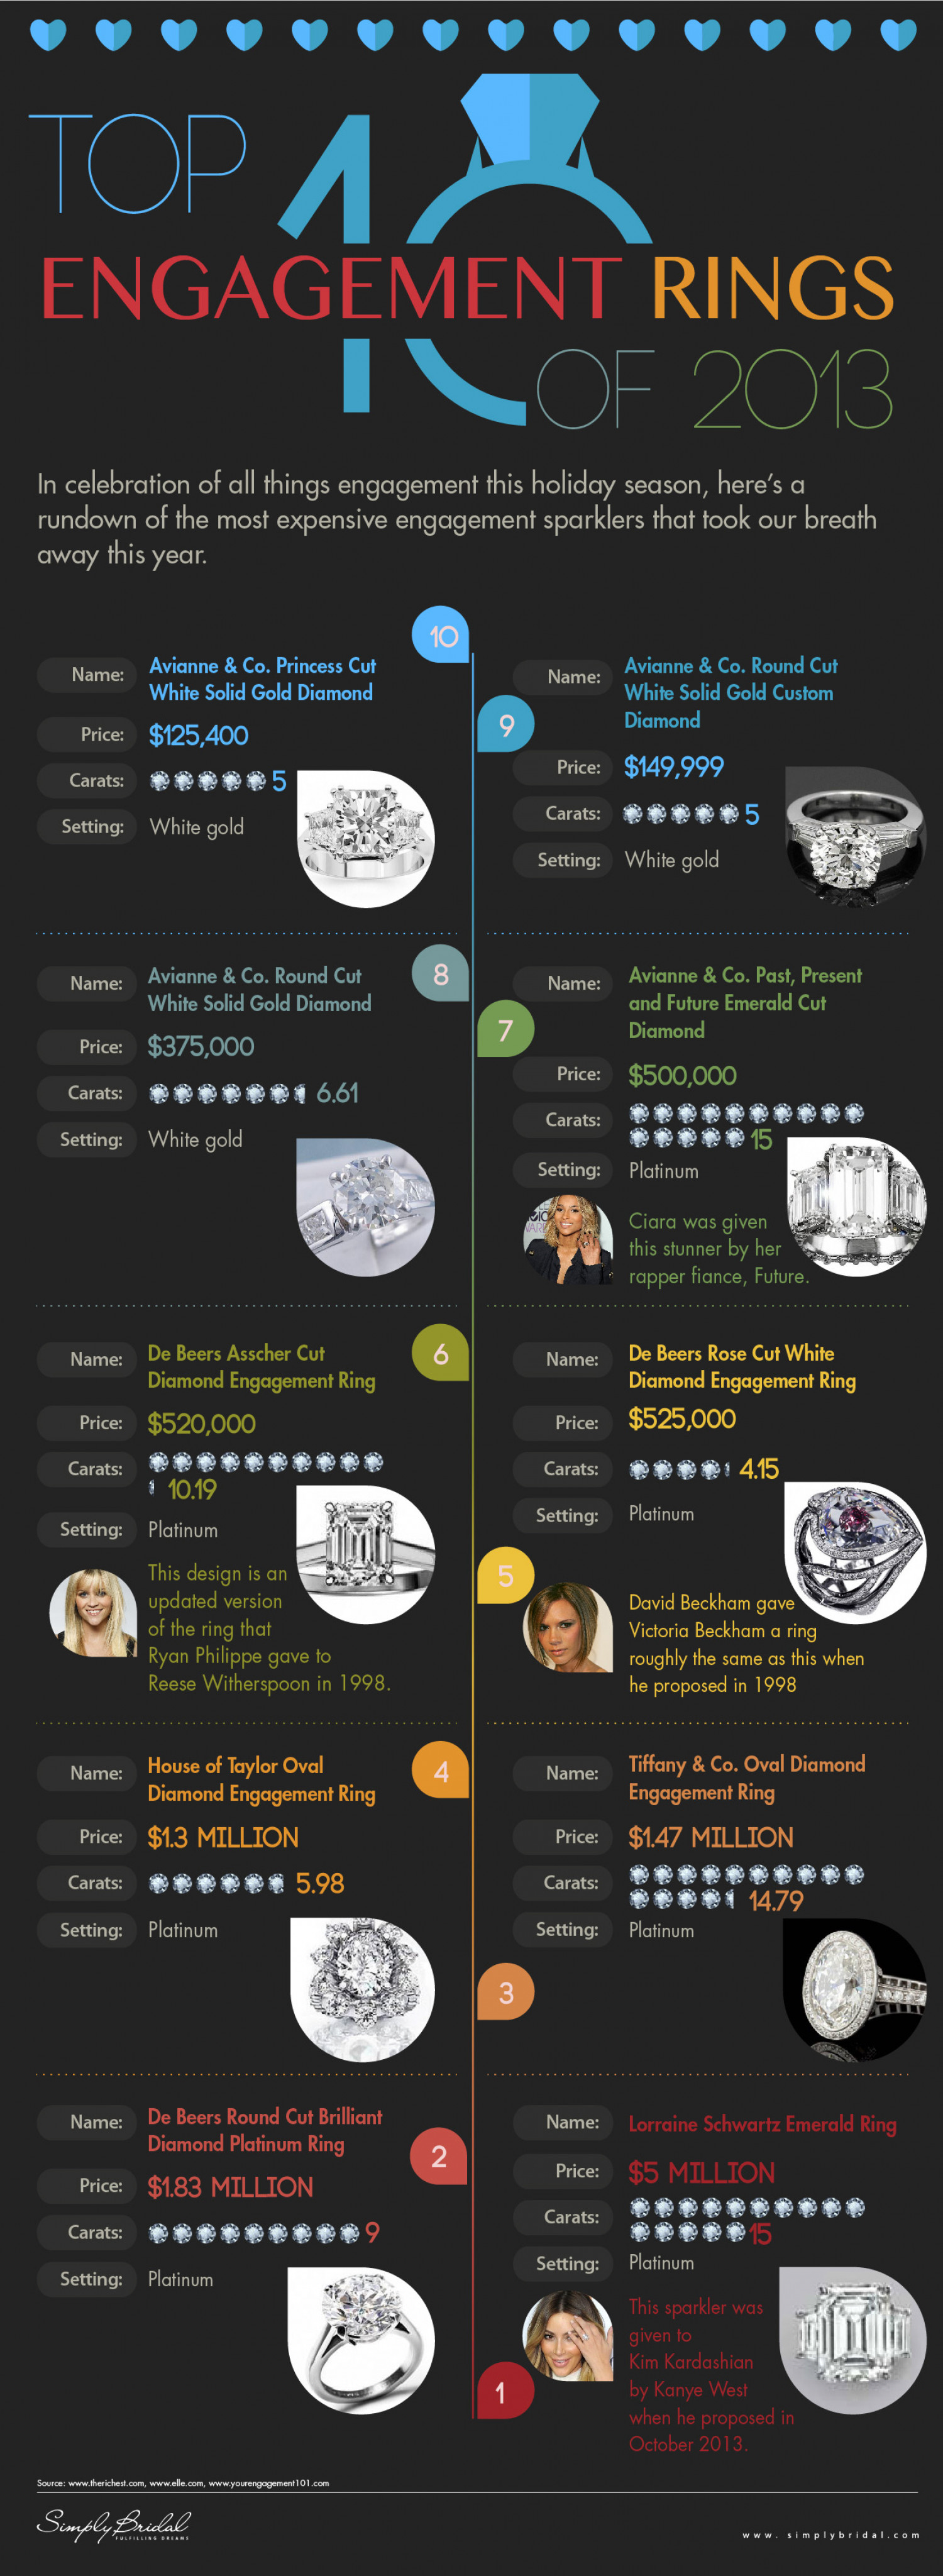 Top 10 Engagement Rings of 2013 Infographic